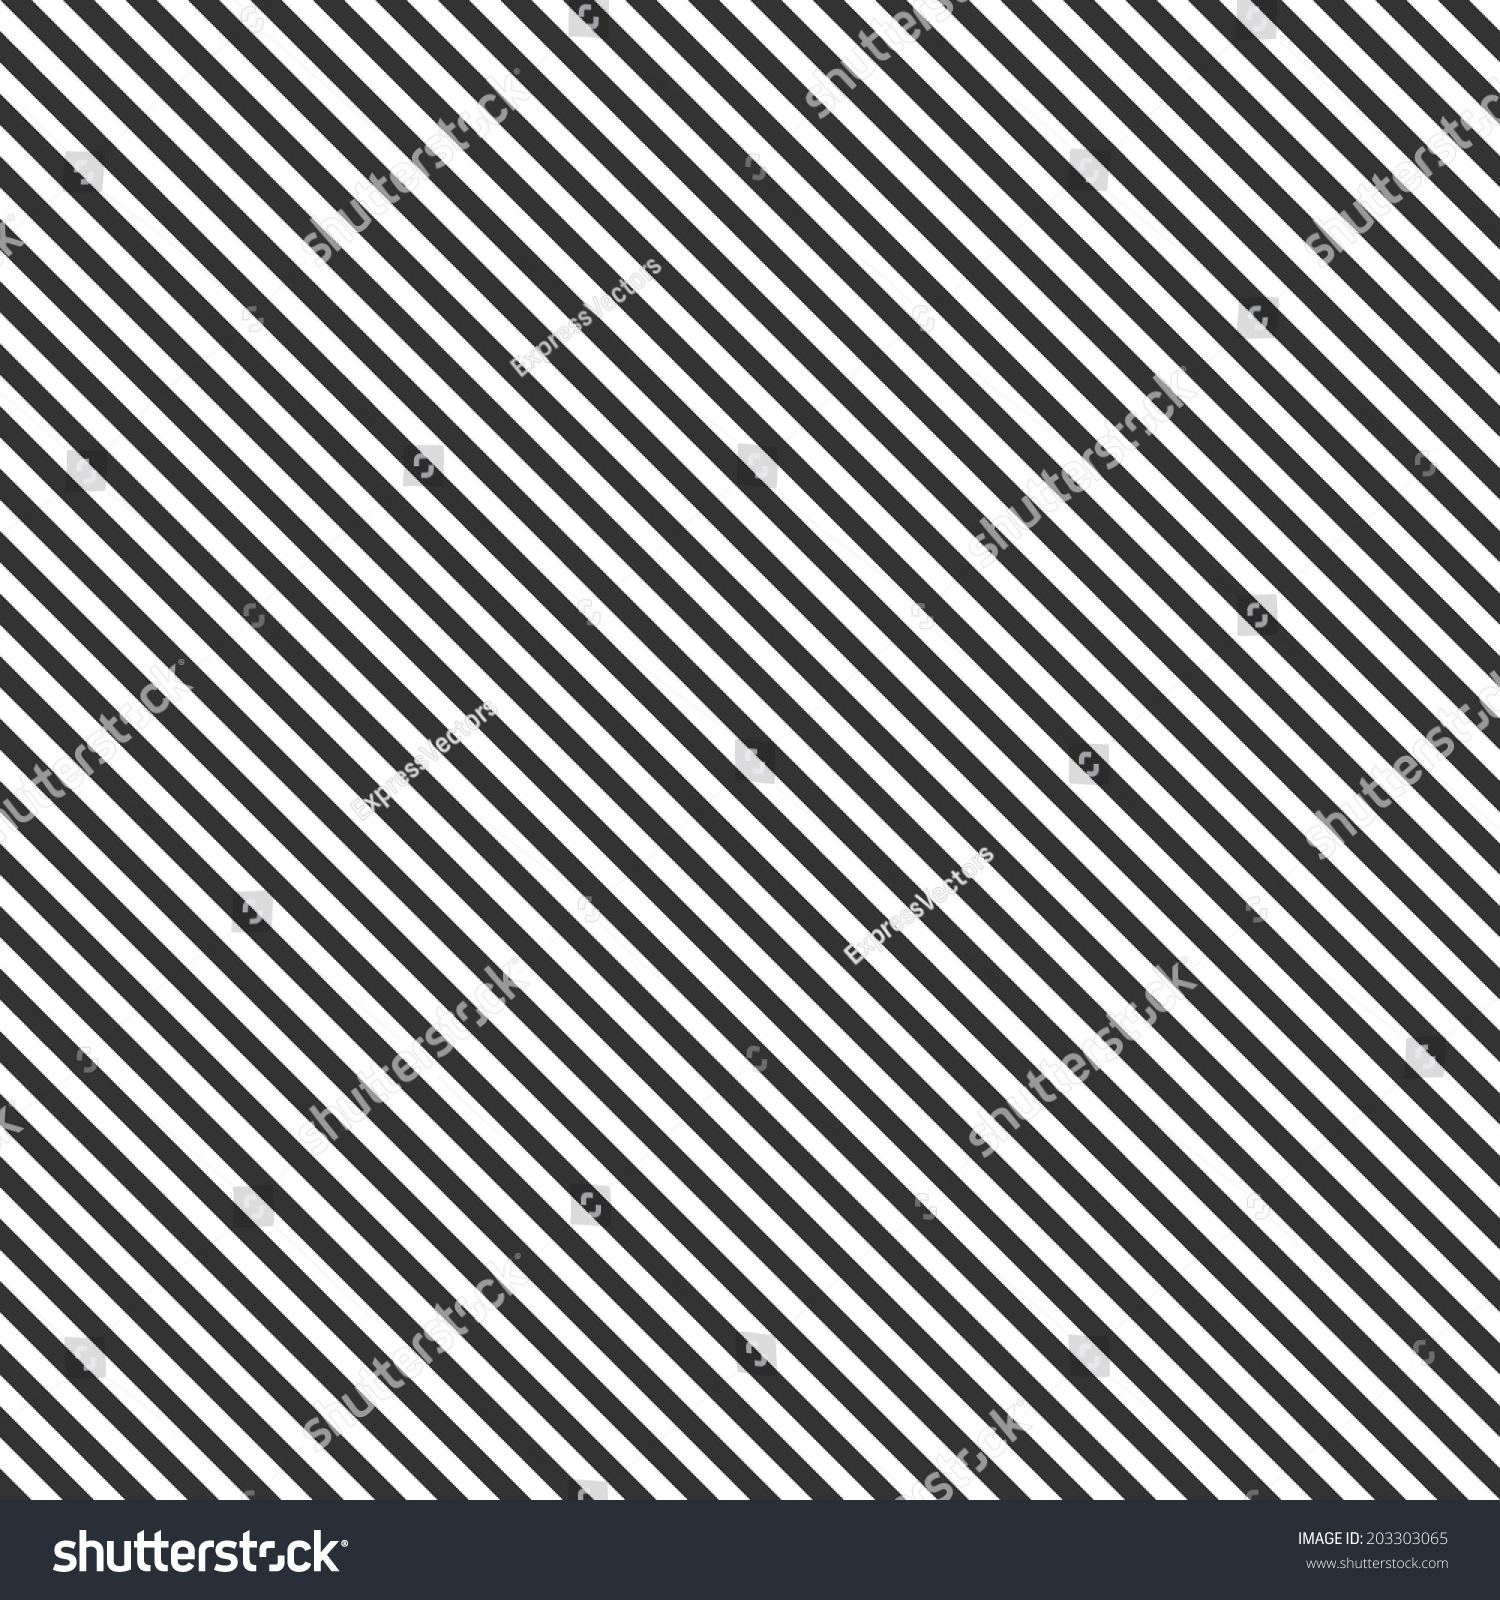 Line Texture Vector : Diagonal lines pattern vector seamless background stock